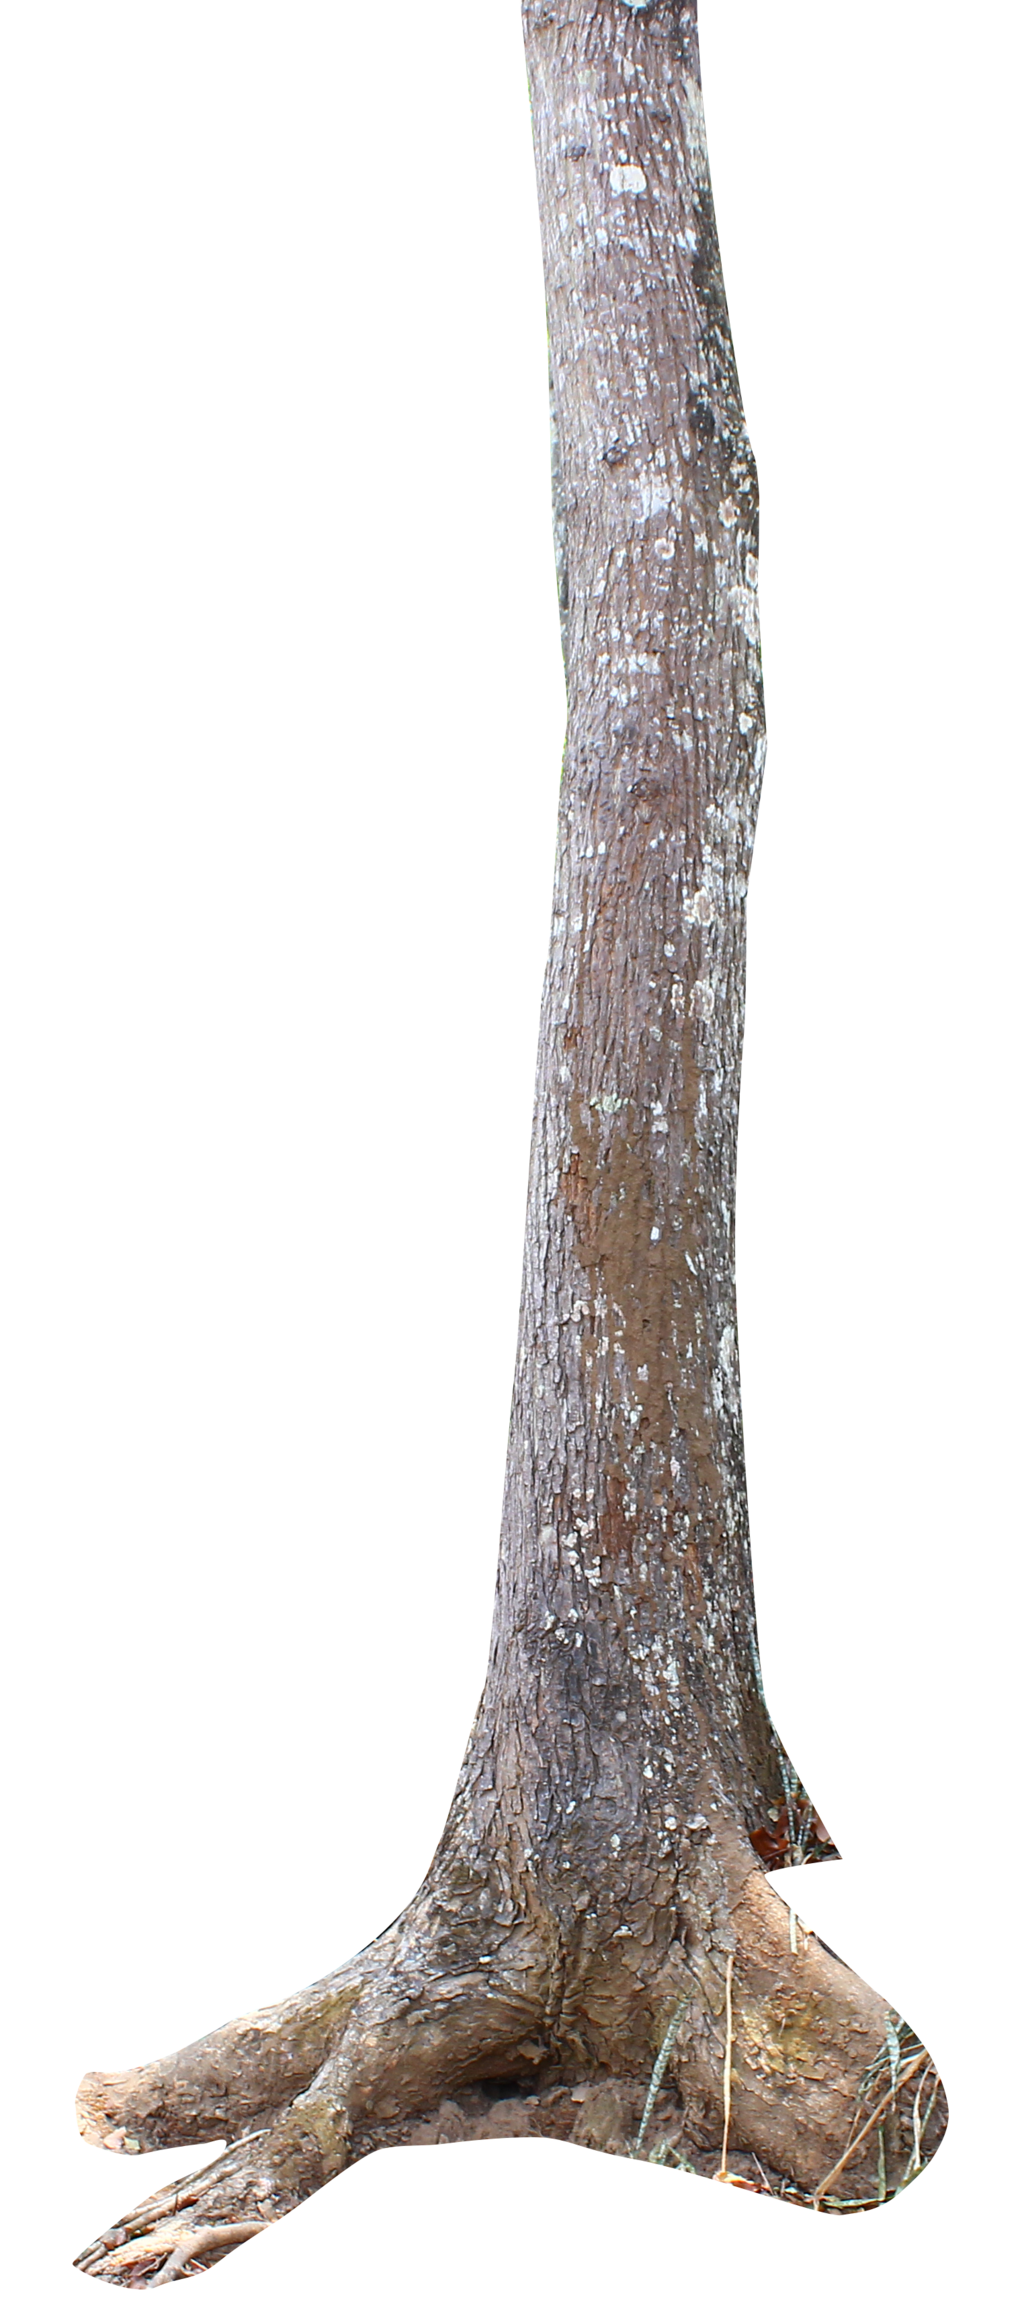 Tree trunk png. Transparent images pluspng by